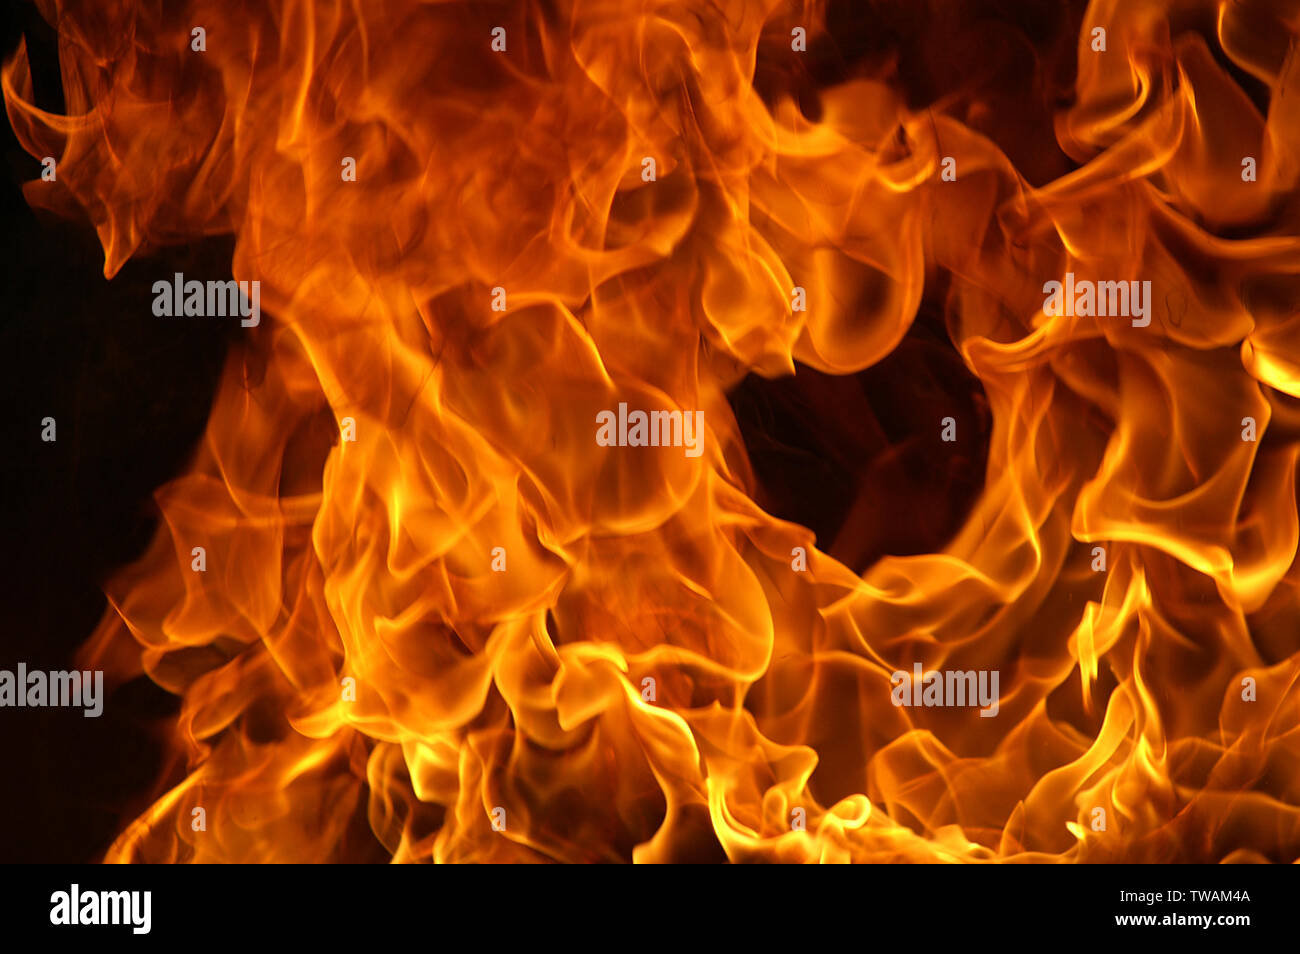 fire and flames - Stock Image